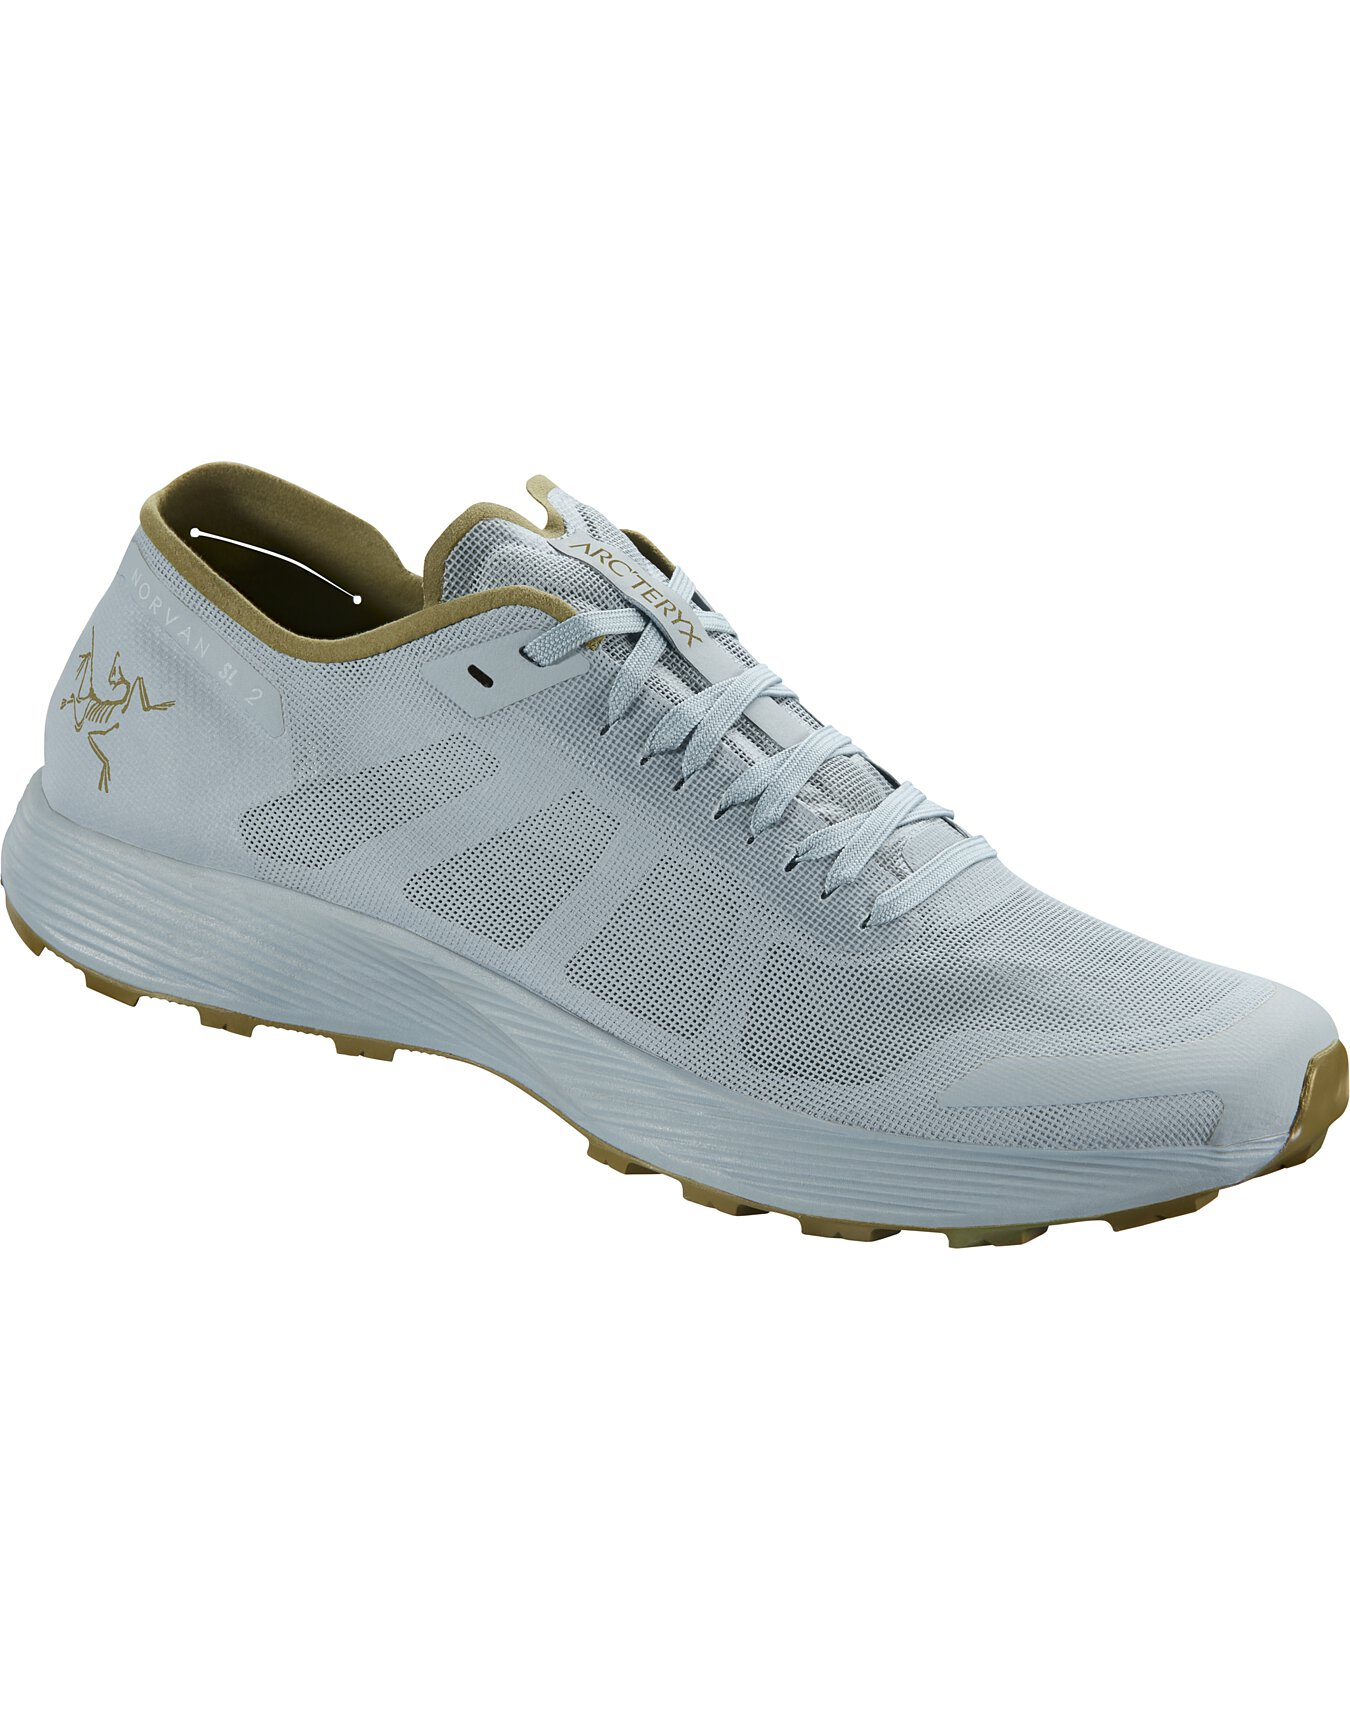 Norvan SL 2 Shoe Women's